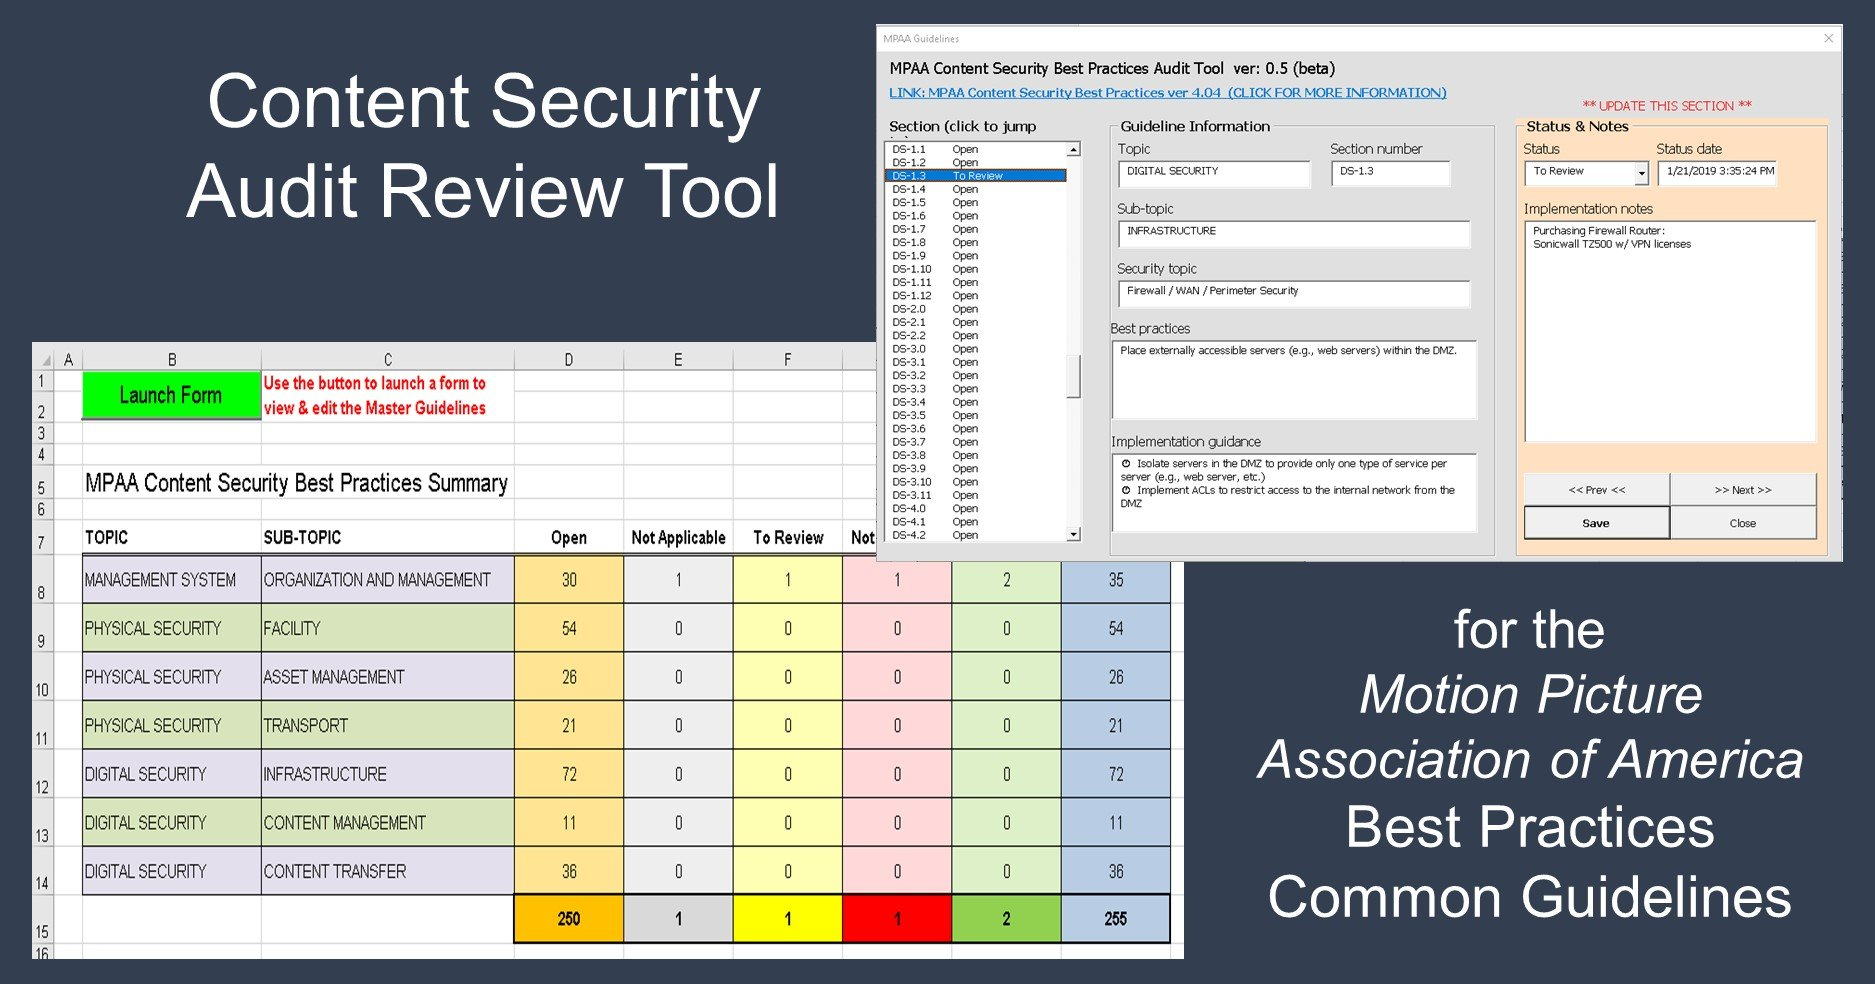 download this free Excel spreadsheet to help you track your MPAA Content Security Audit